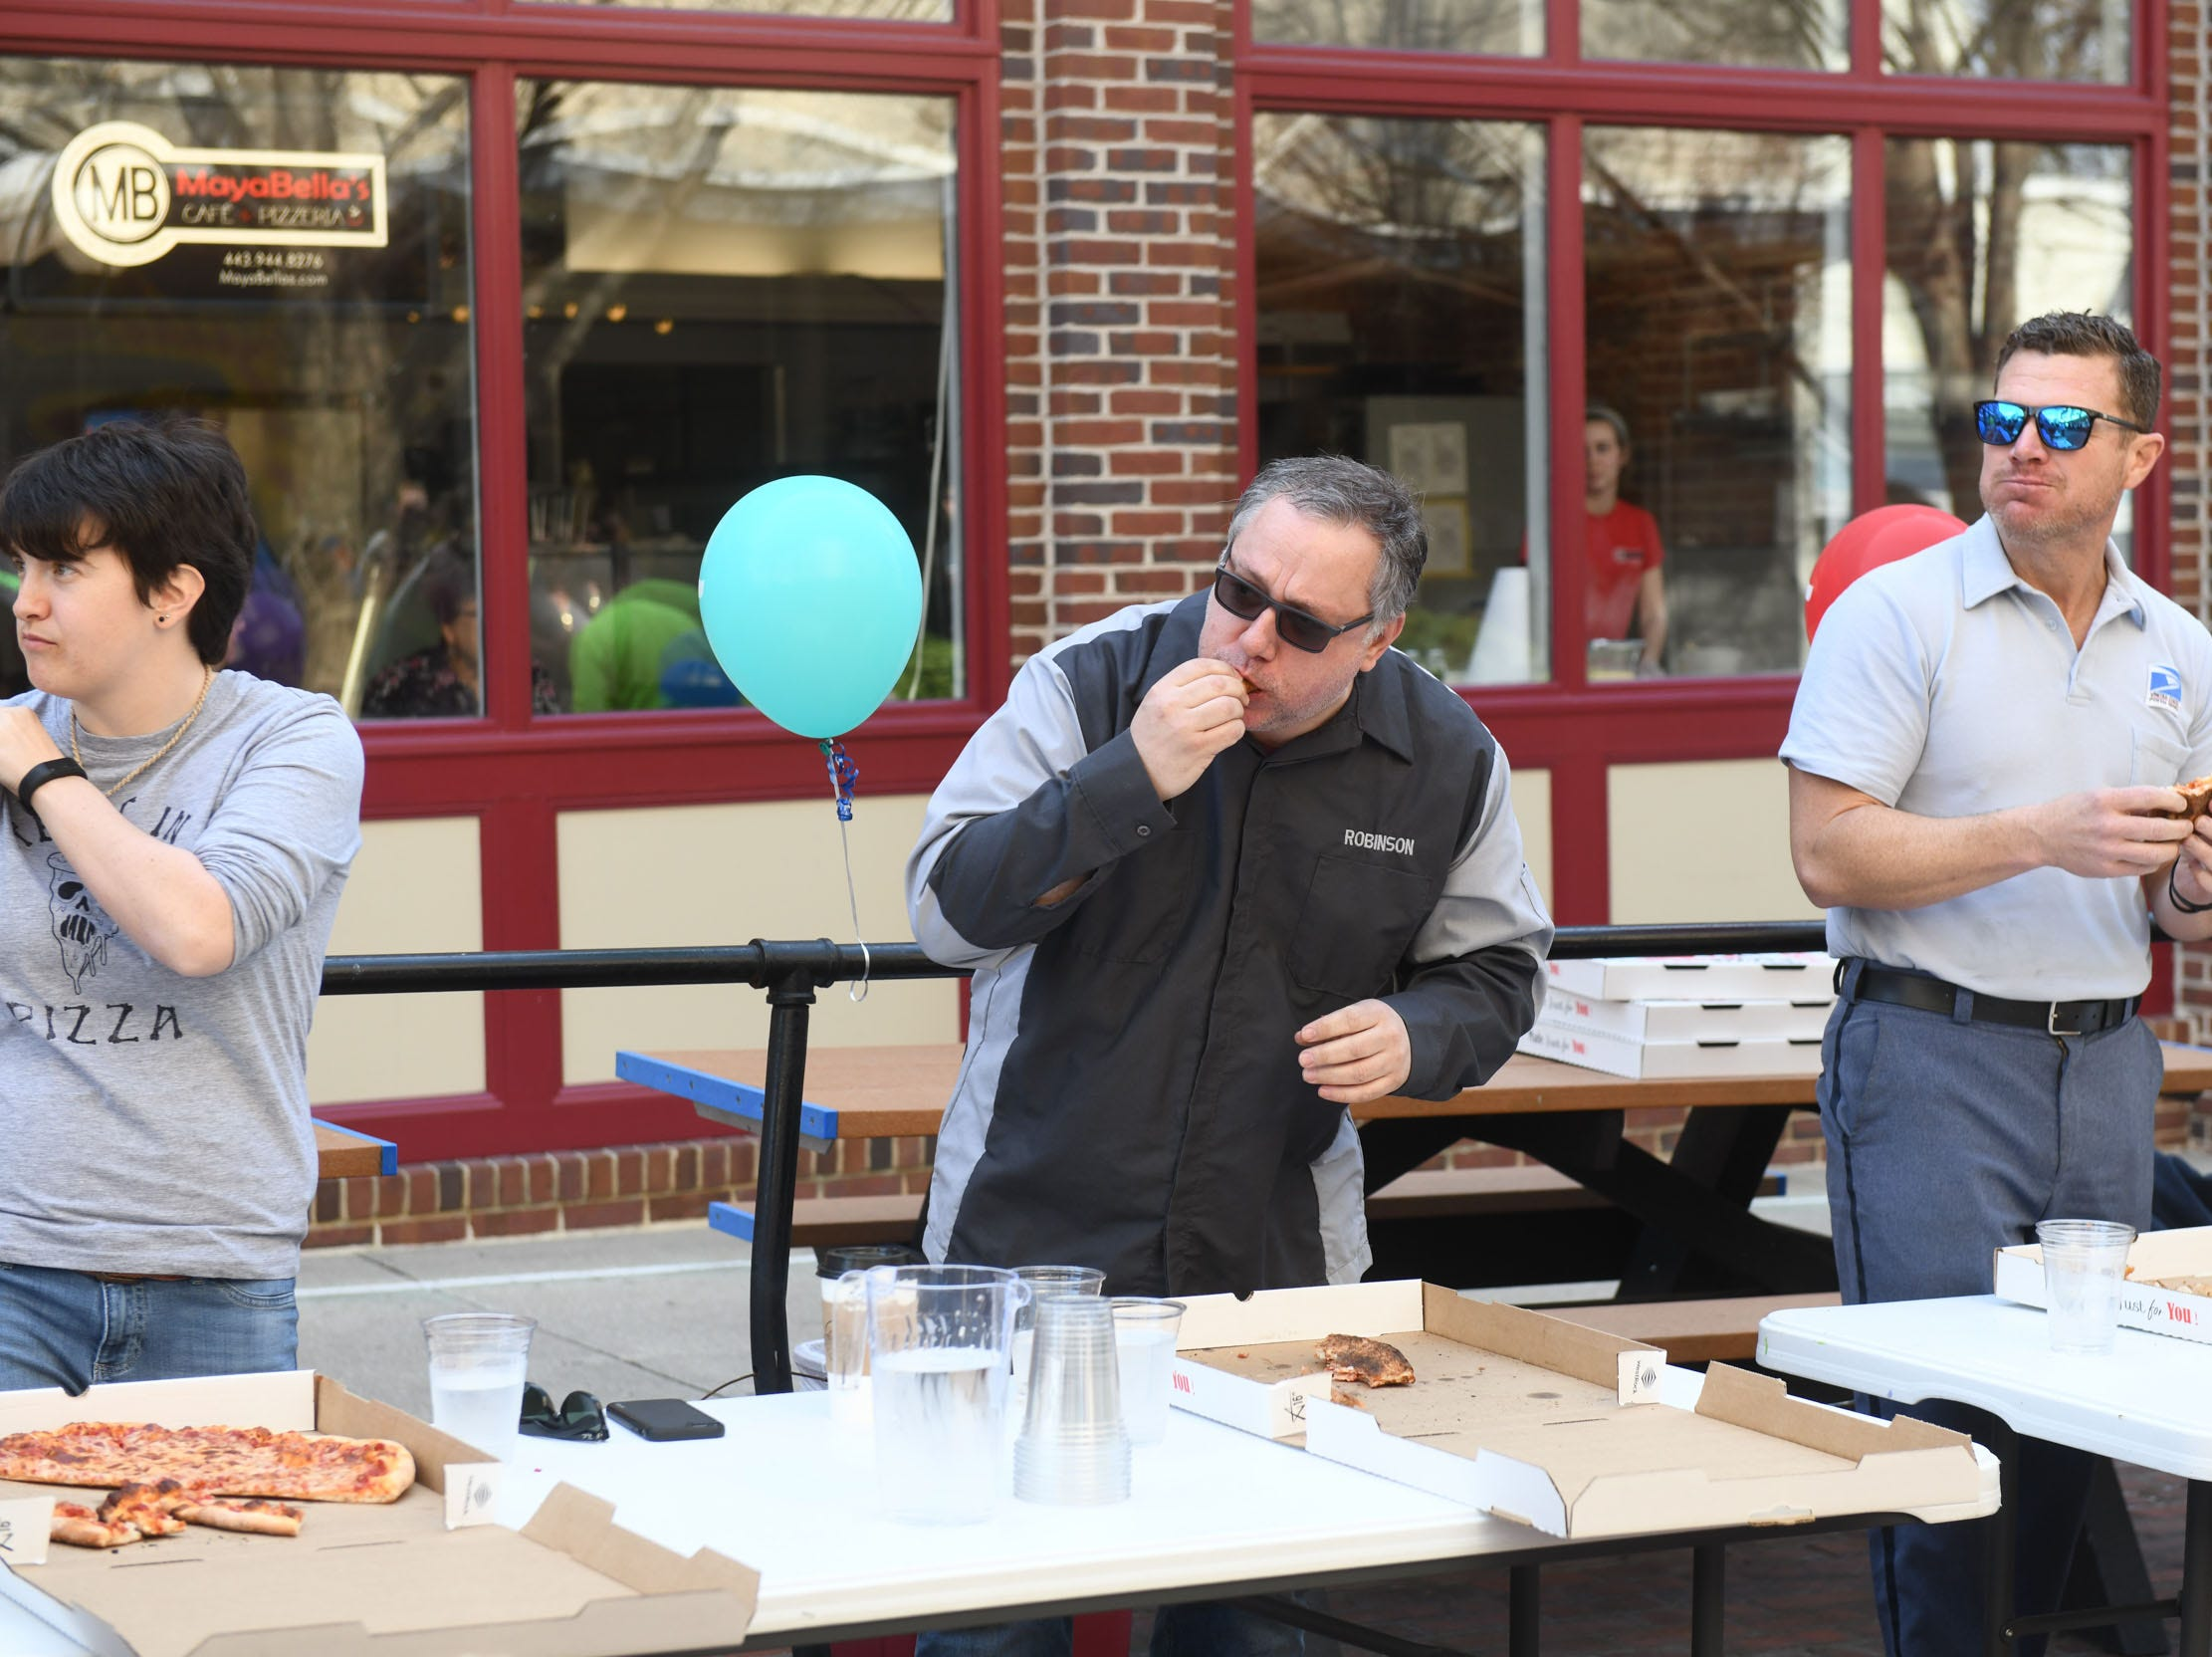 (Middle) John Robinson works on eating a 16-inch pie during PI(e) Day in Downtown Salisbury on Thursday, March 14, 2019.